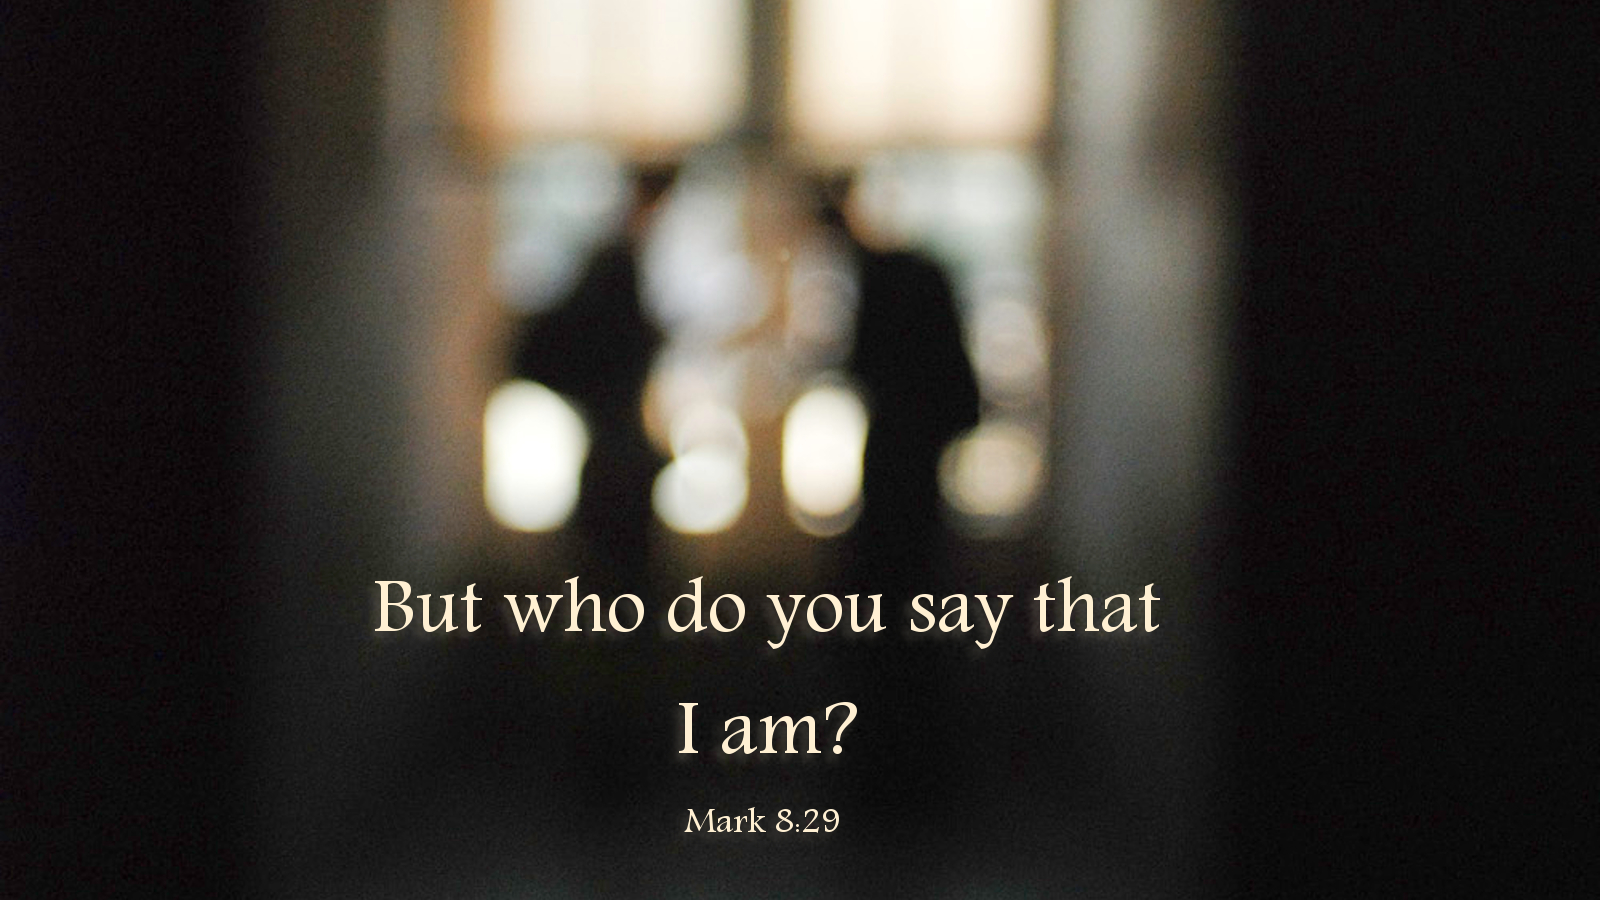 who is jesus to you essay The disciples had been with jesus well over two years, listening to him teach,  seeing him perform  essay: mark 8  now they were traveling around to  villages around caesarea philippi when jesus asks them,  who do you say that  i am.